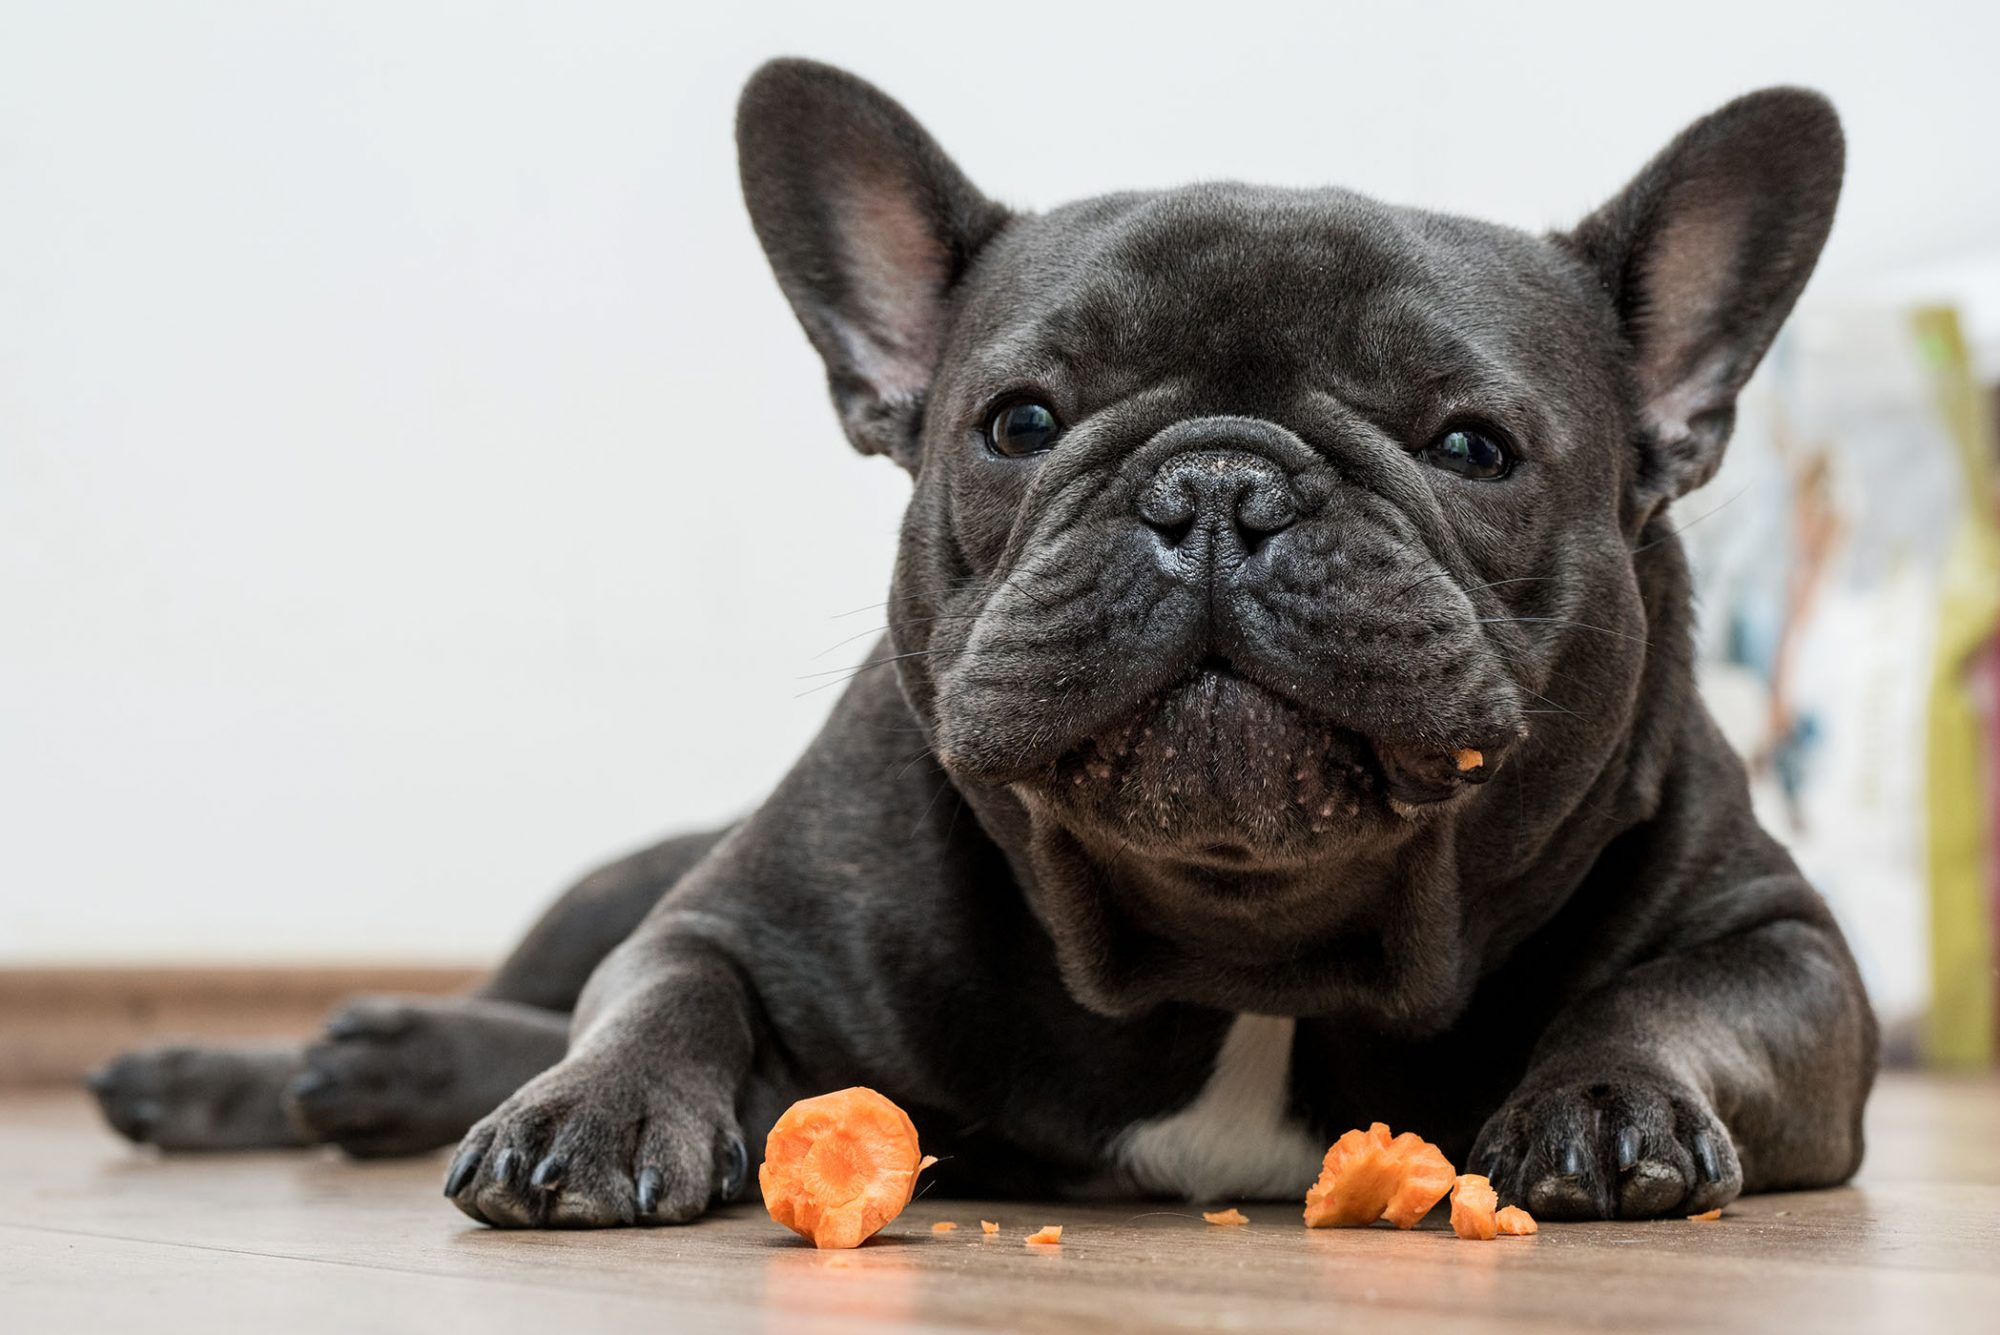 french bulldog eating a carrot